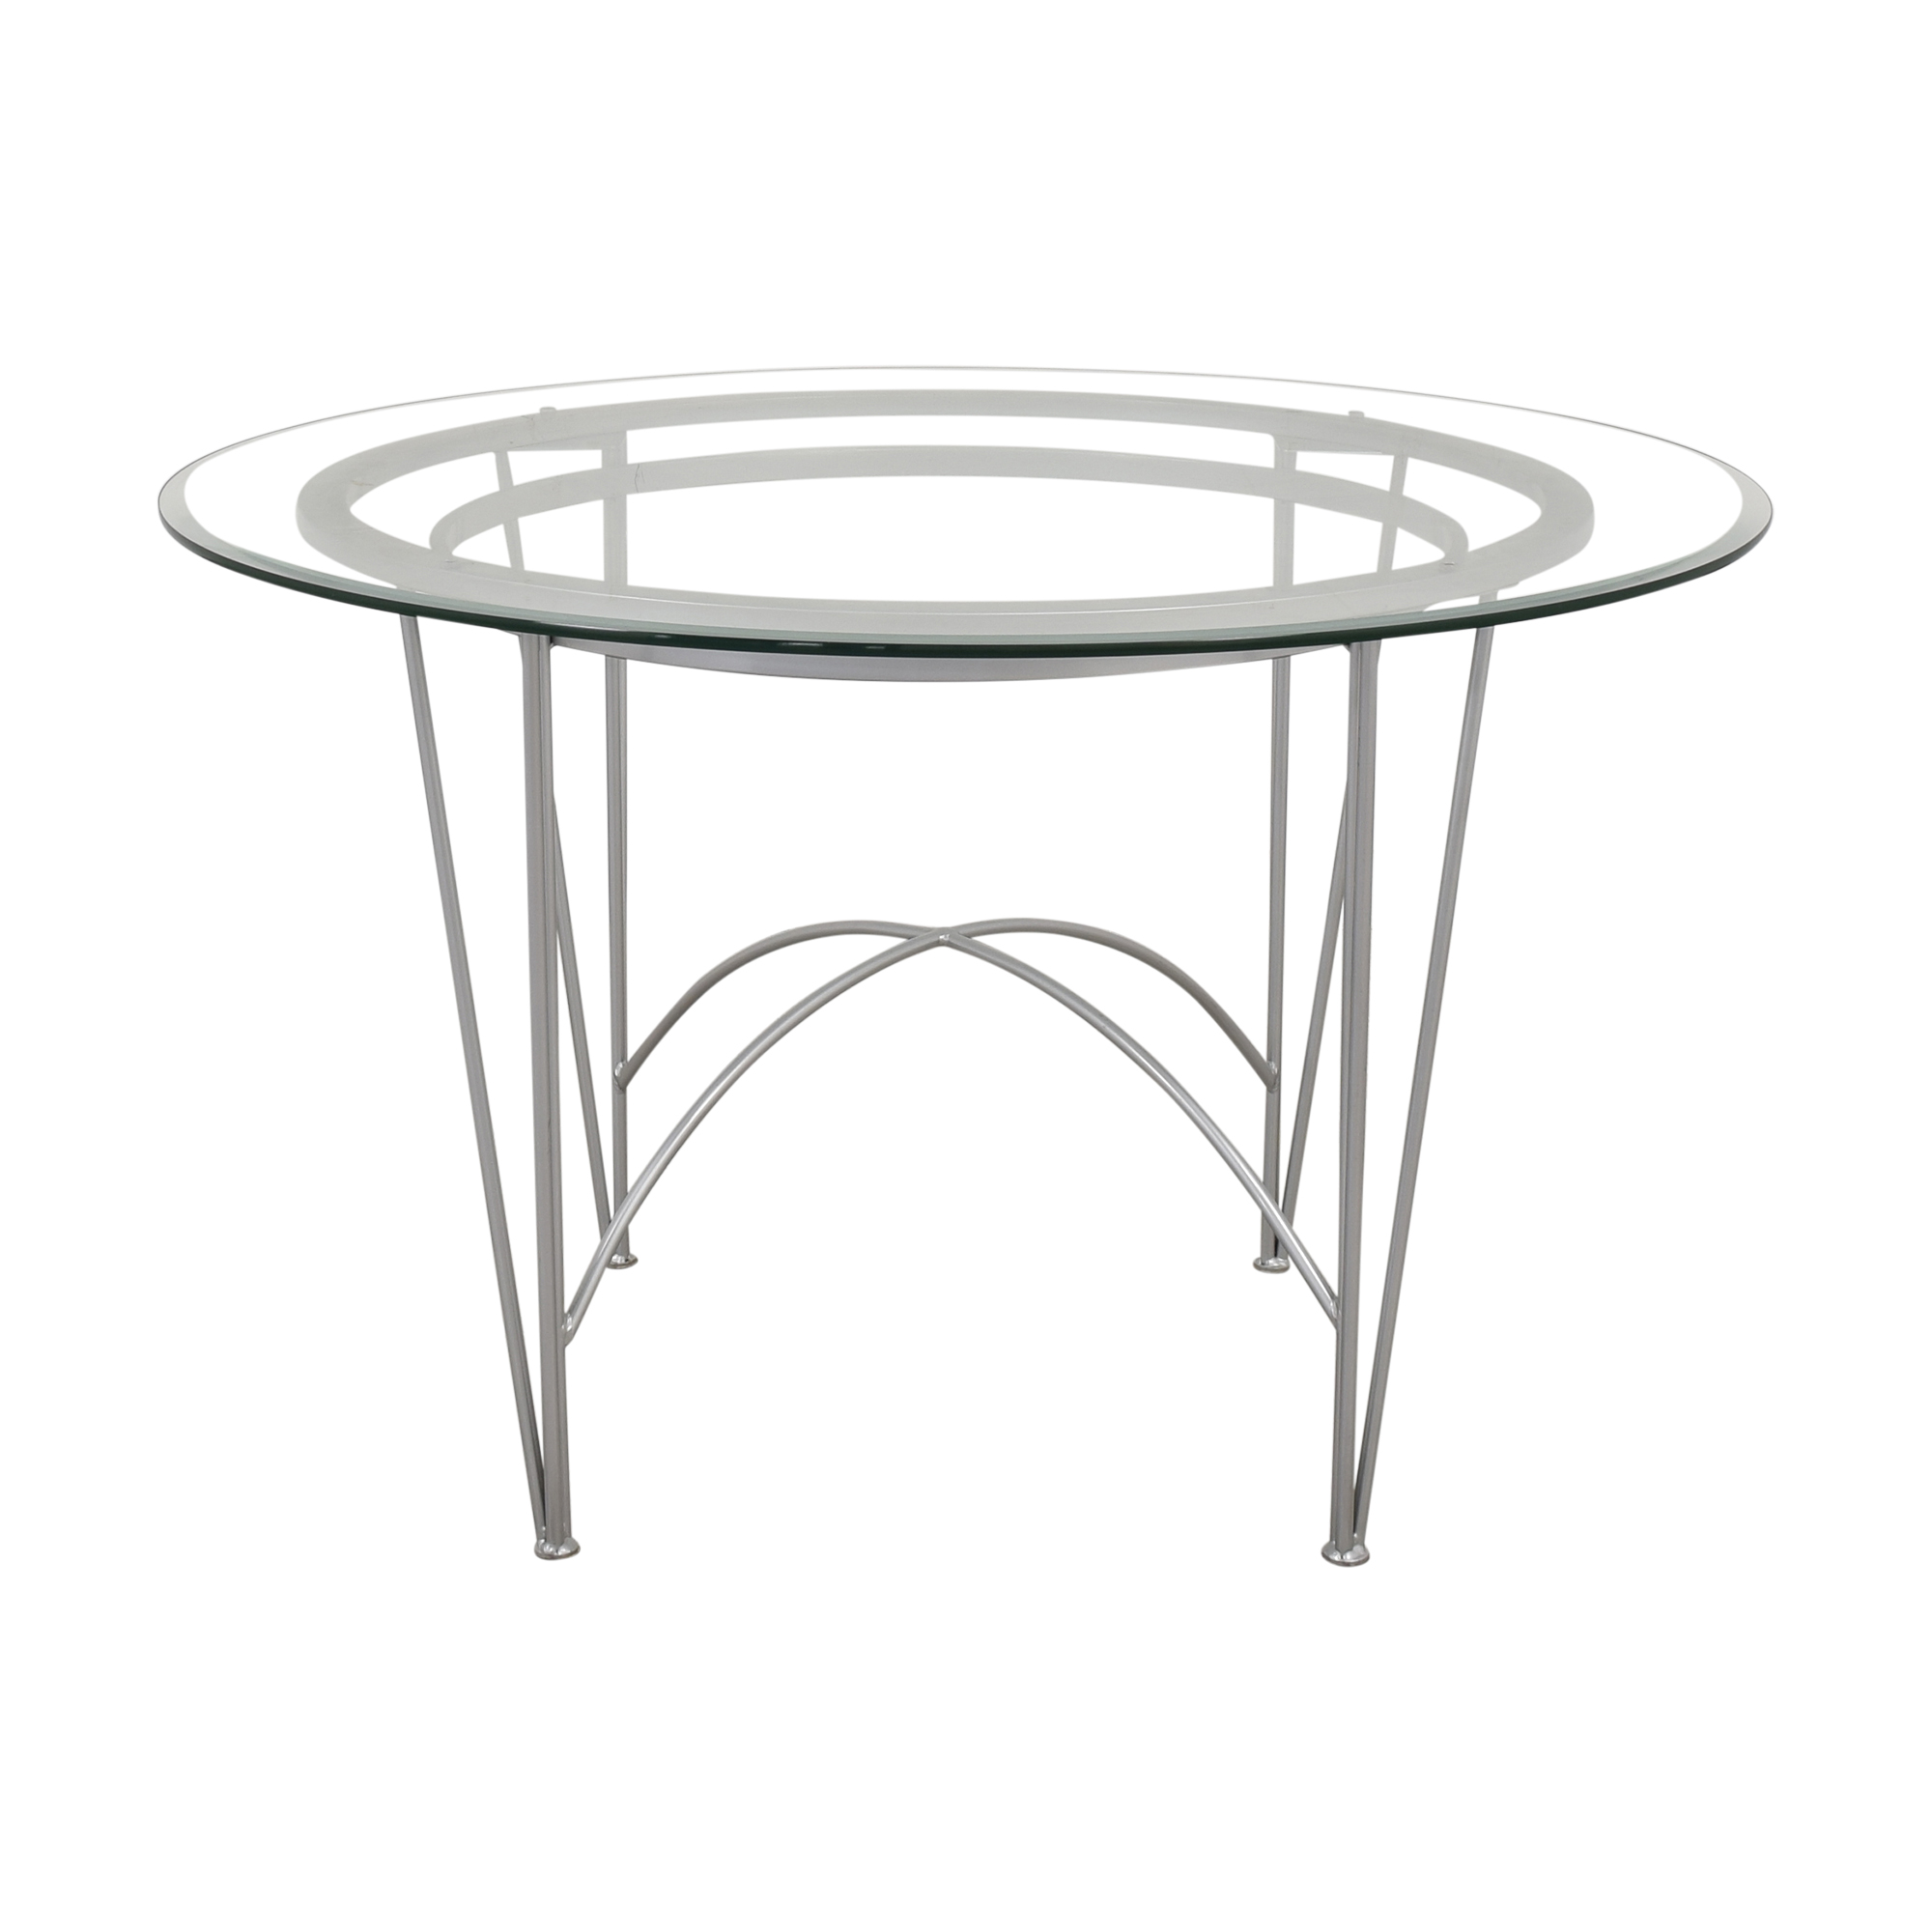 Round Glass Top Dining Table with Hairpin Legs silver and clear